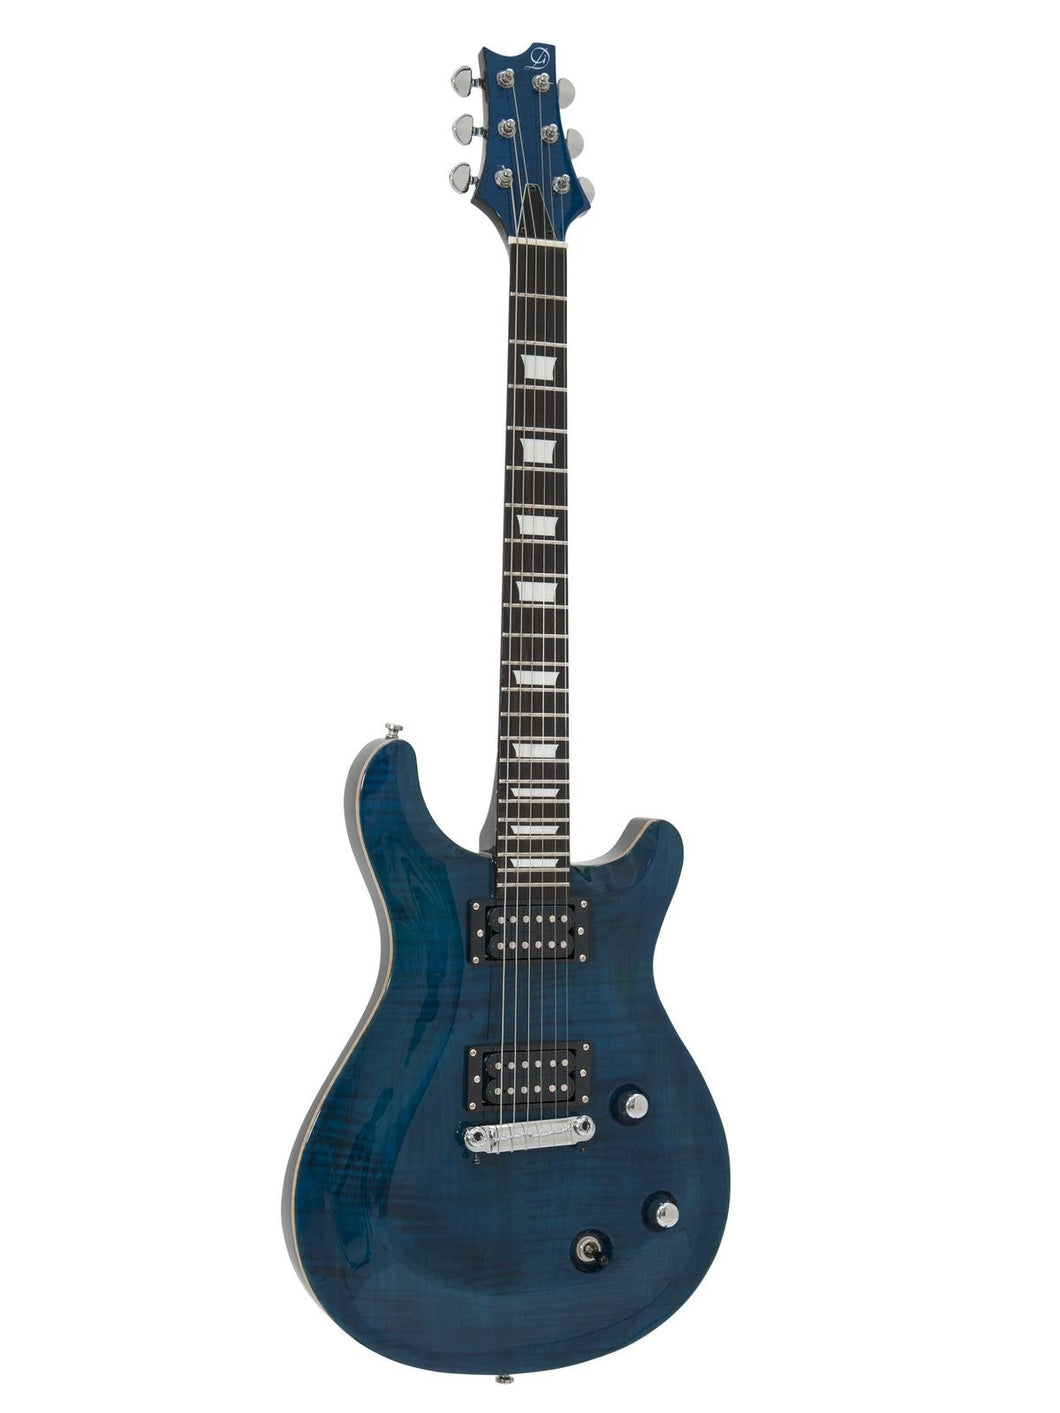 DIMAVERY DP-600 flamed blue